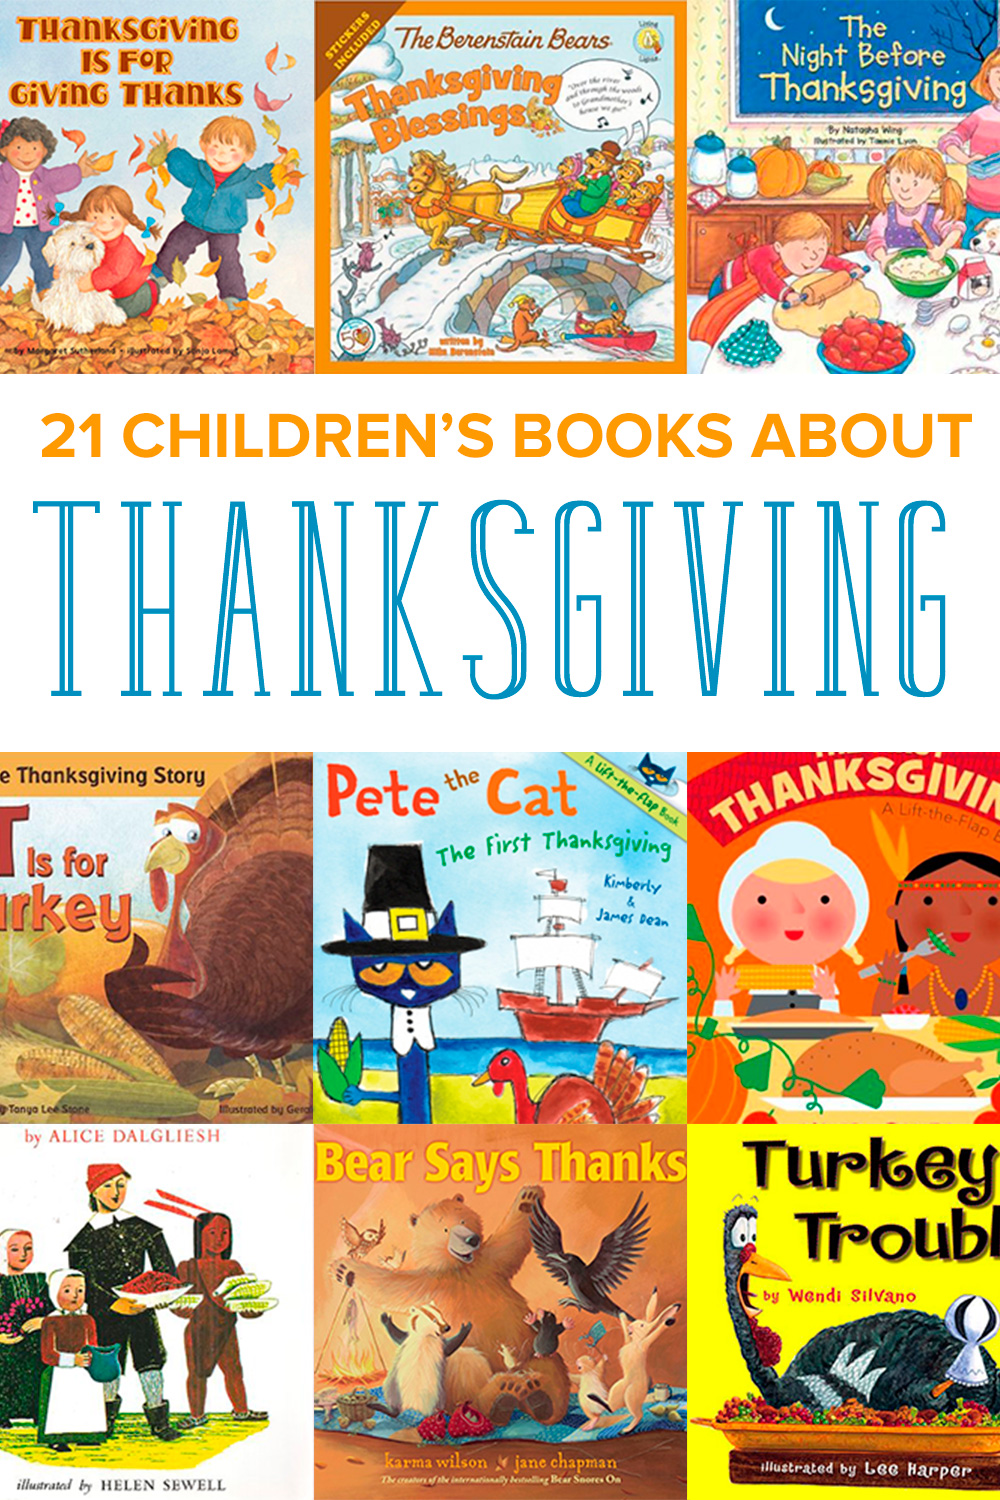 Gobble up these Thanksgiving kids books, perfect for the young reader. From turkeys to fall, your kids will enjoy reading about Thanksgiving.